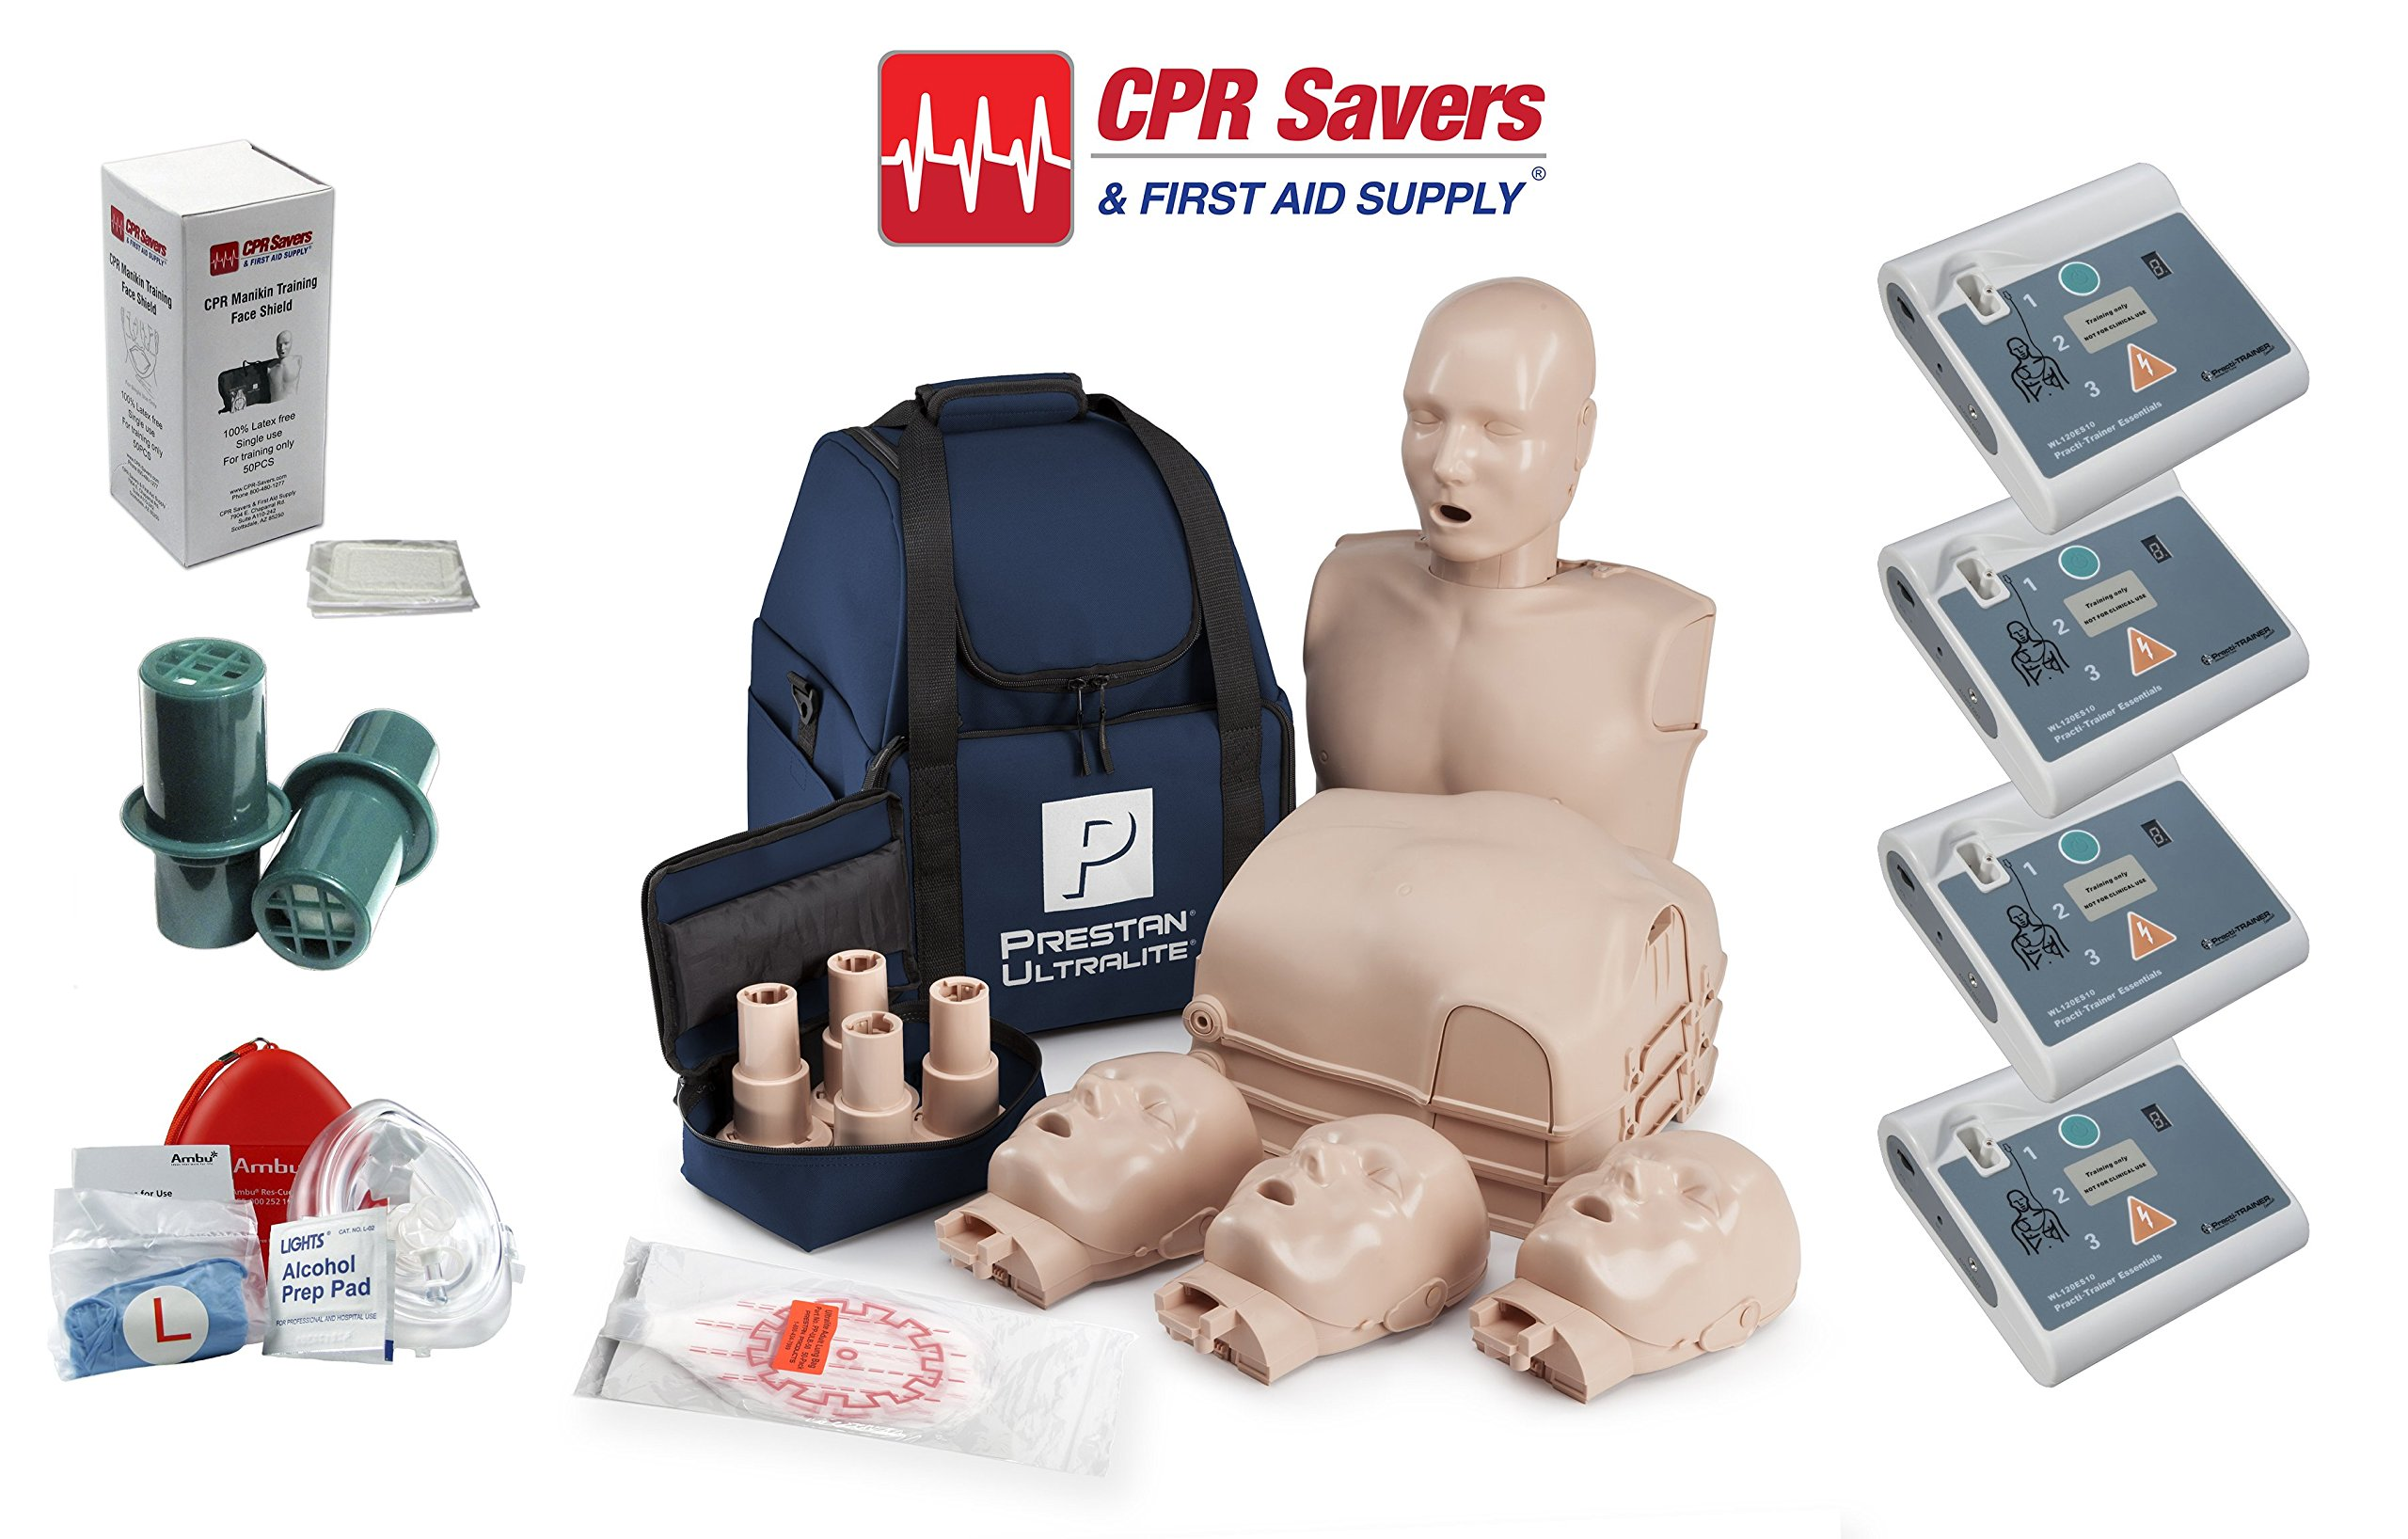 Beginner Instructor Package with 4 AED Trainers